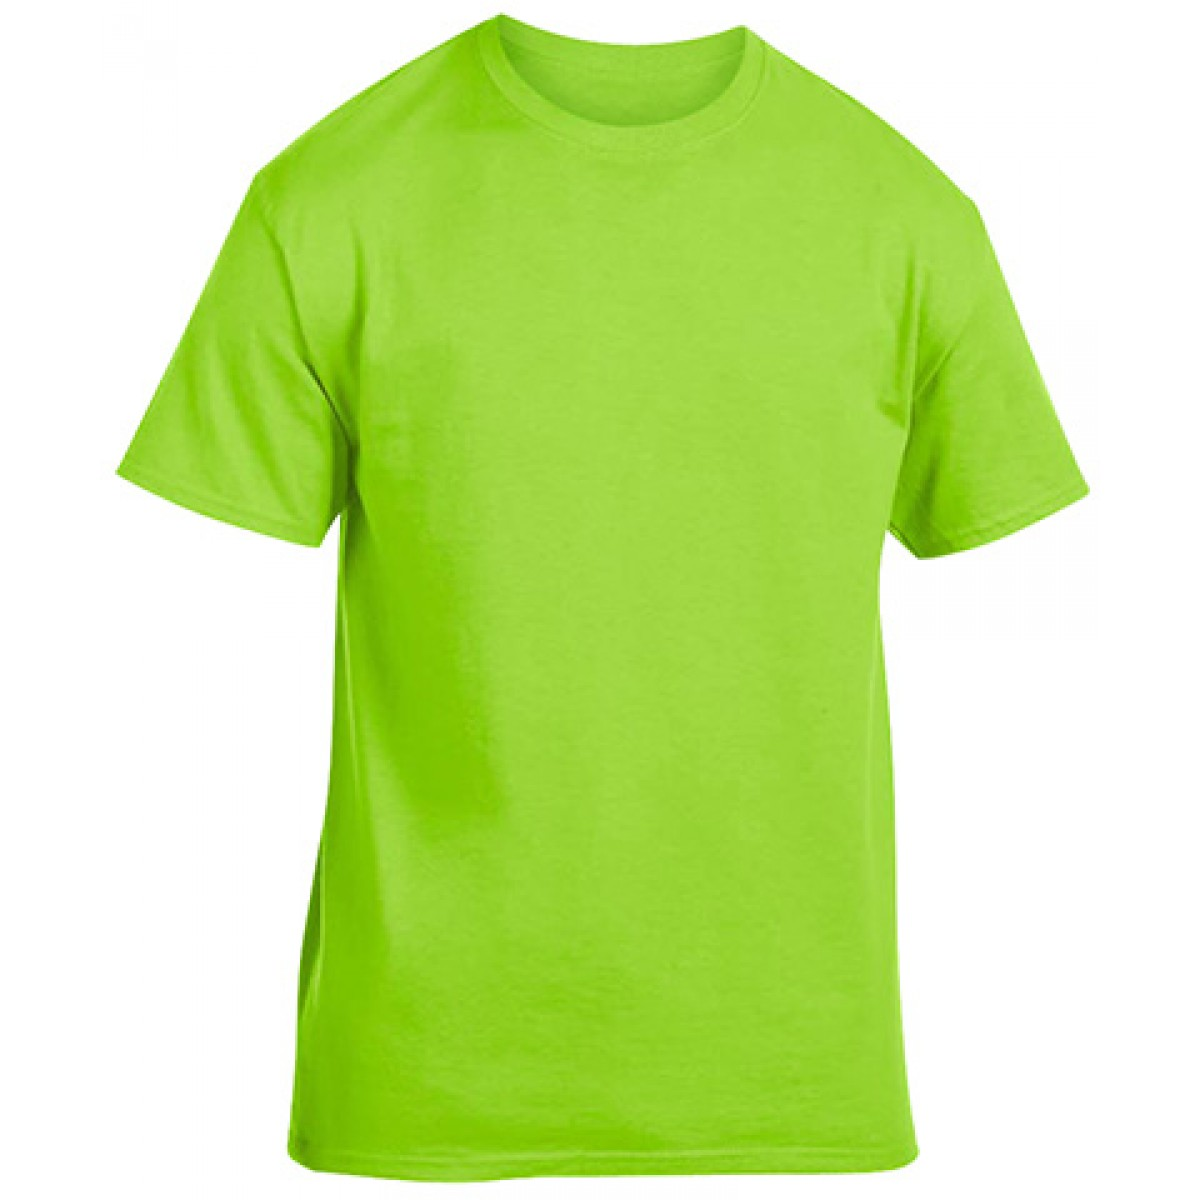 Soft 100% Cotton T-Shirt-Lime Green-2XL